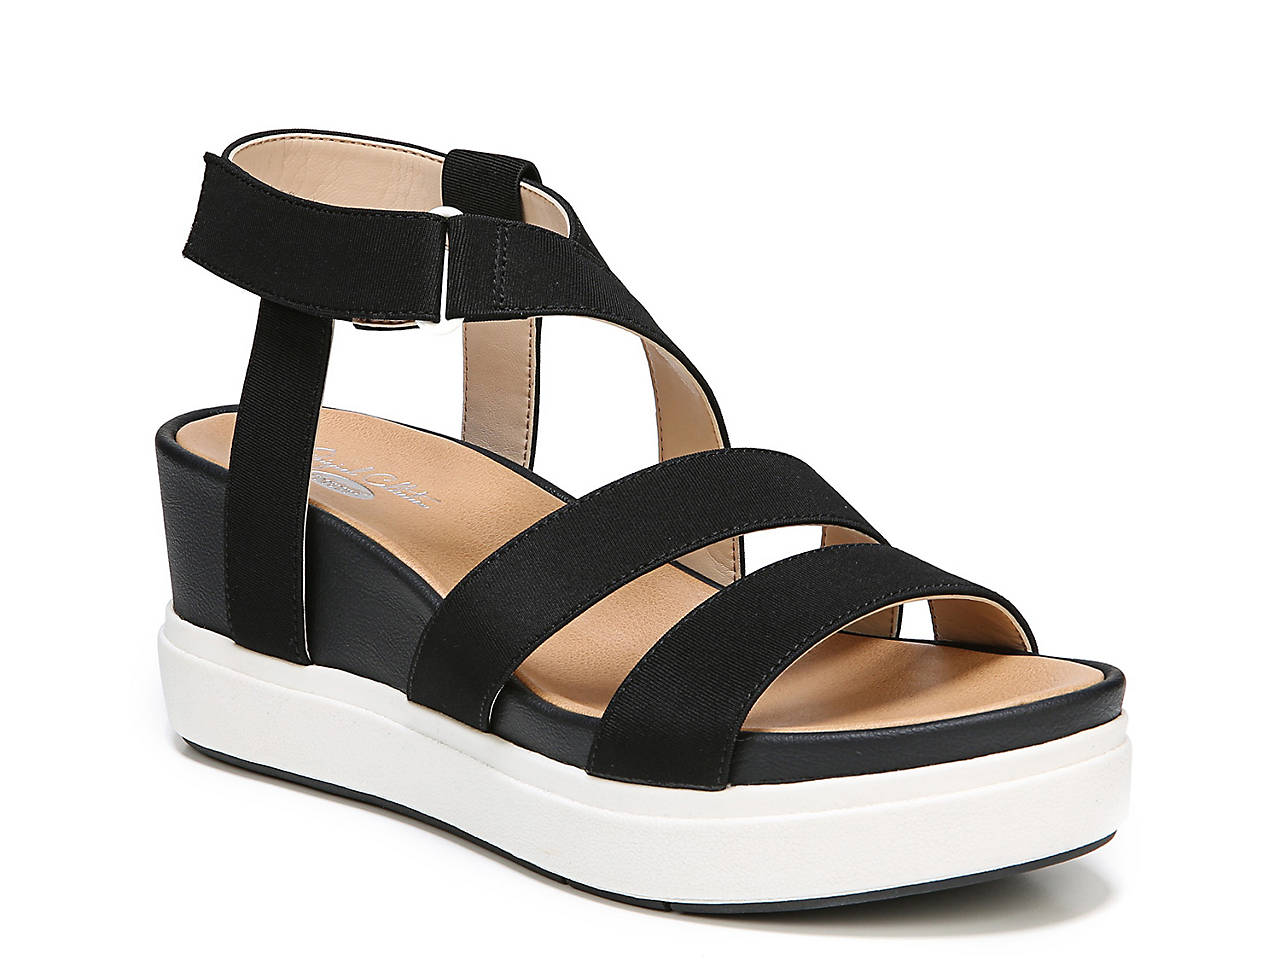 Social Wedge Sandal by Dr. Scholl's